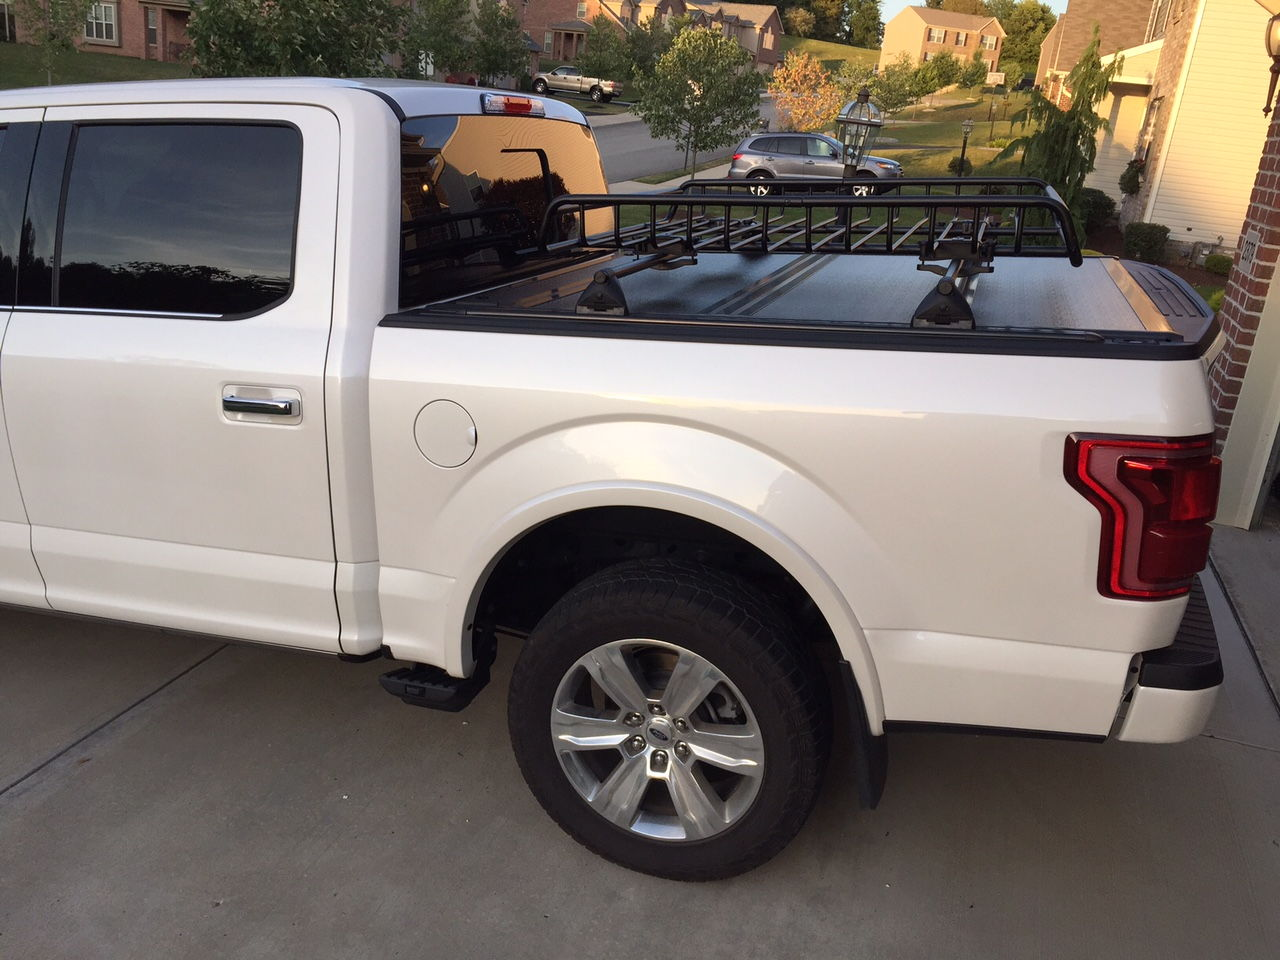 Ford F150 Rack >> Cargo Rack on top of bed - Ford F150 Forum - Community of ...